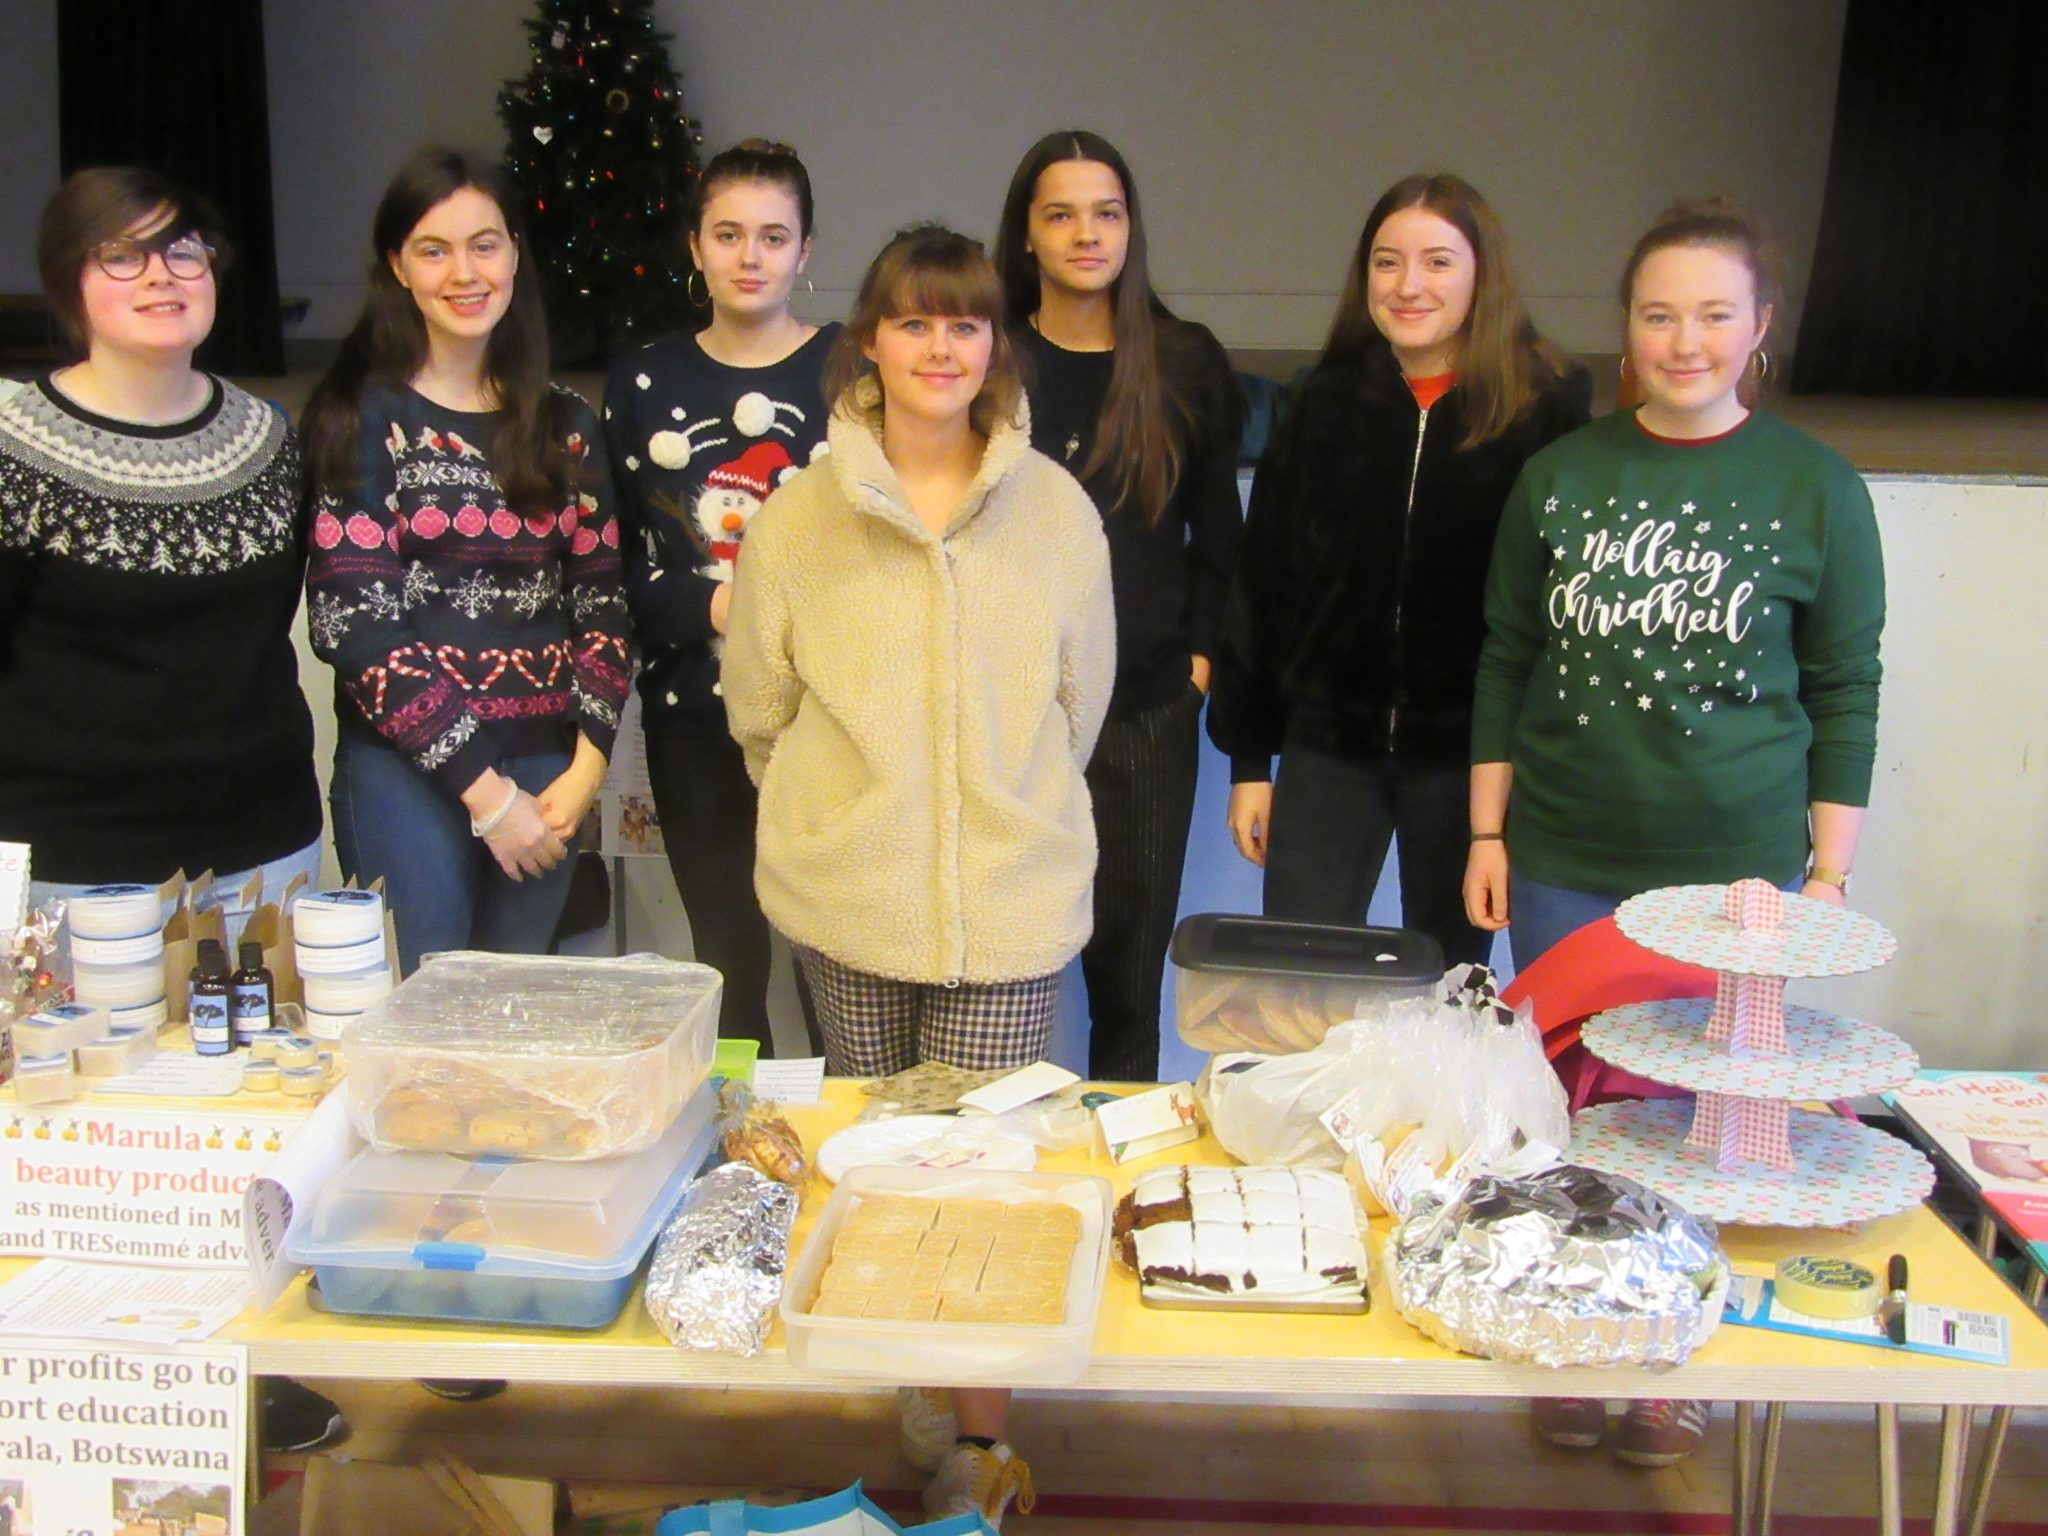 Fund-raising  bake  sale  at  the  Glasgow  Gaelic  School